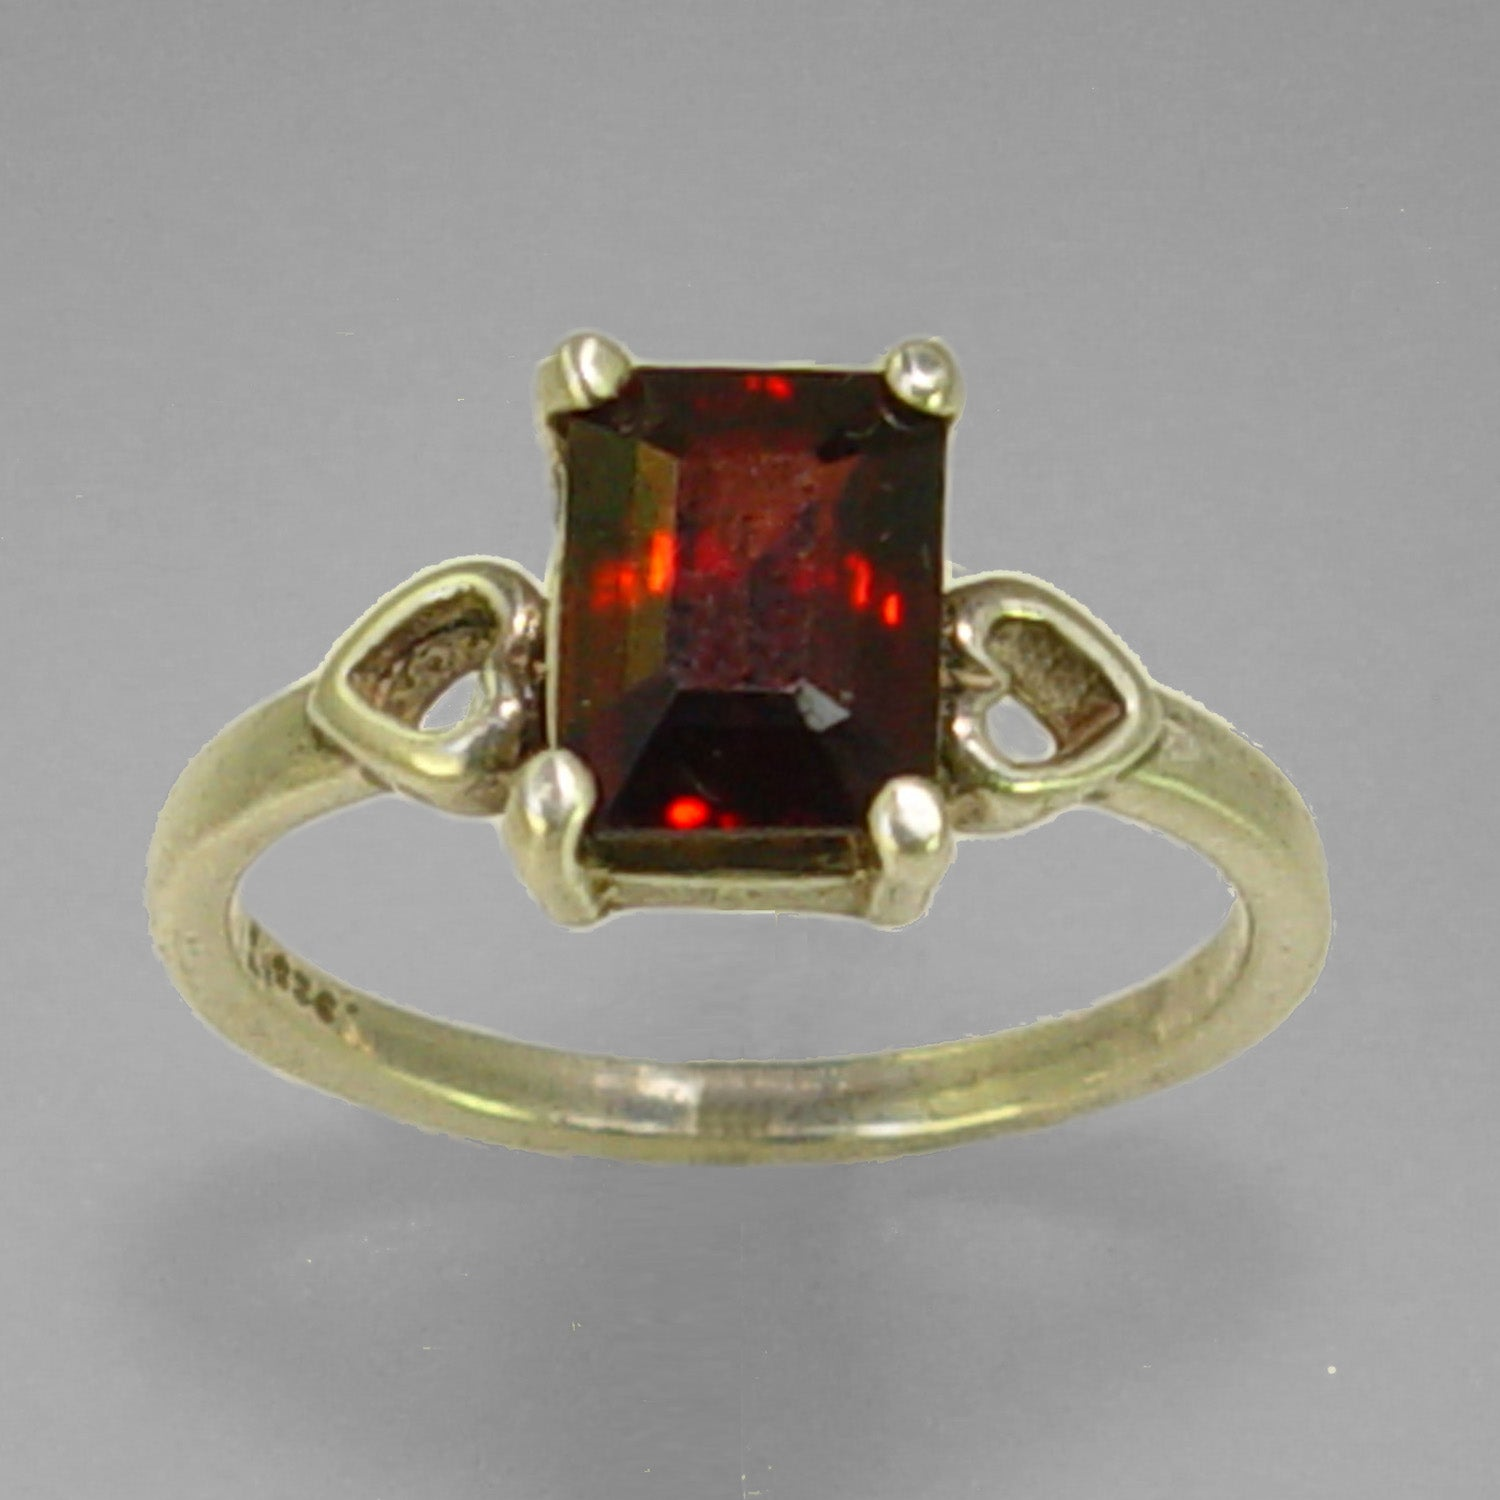 Garnet 2.7 ct Faceted Emerald Cut Sterling Silver Ring, Size 7